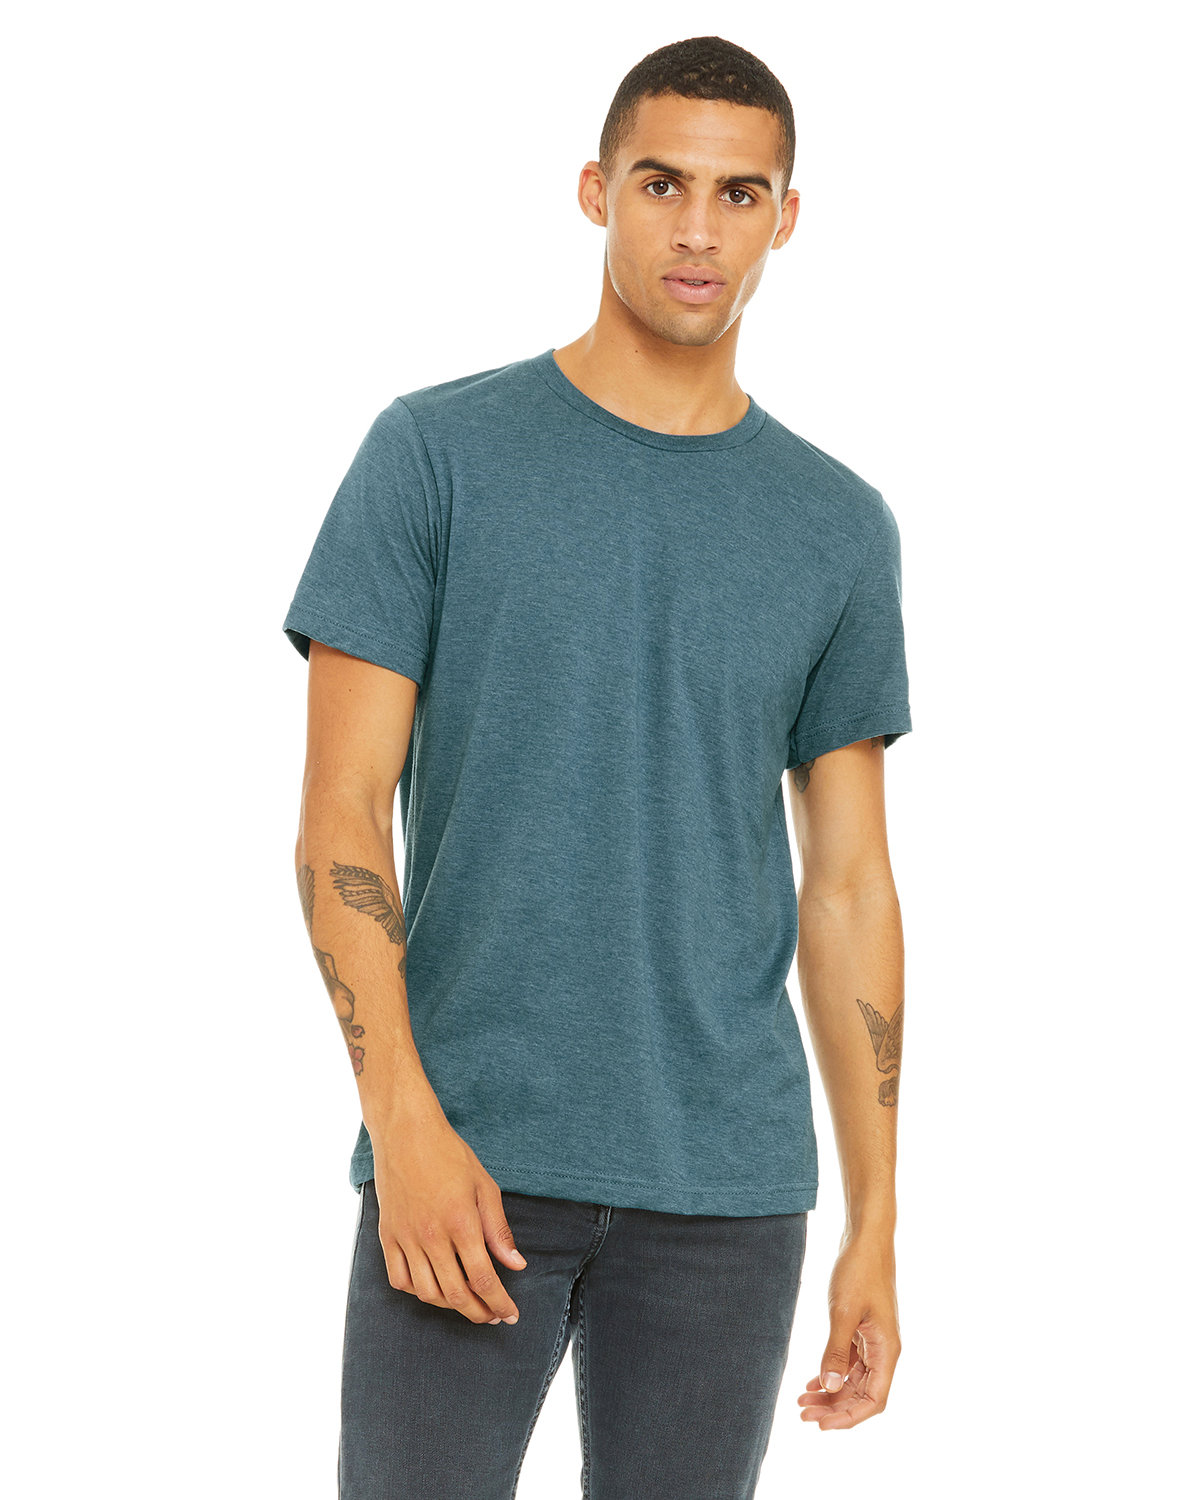 Bella + Canvas Unisex Heather CVC T-Shirt HEATHR DEEP TEAL